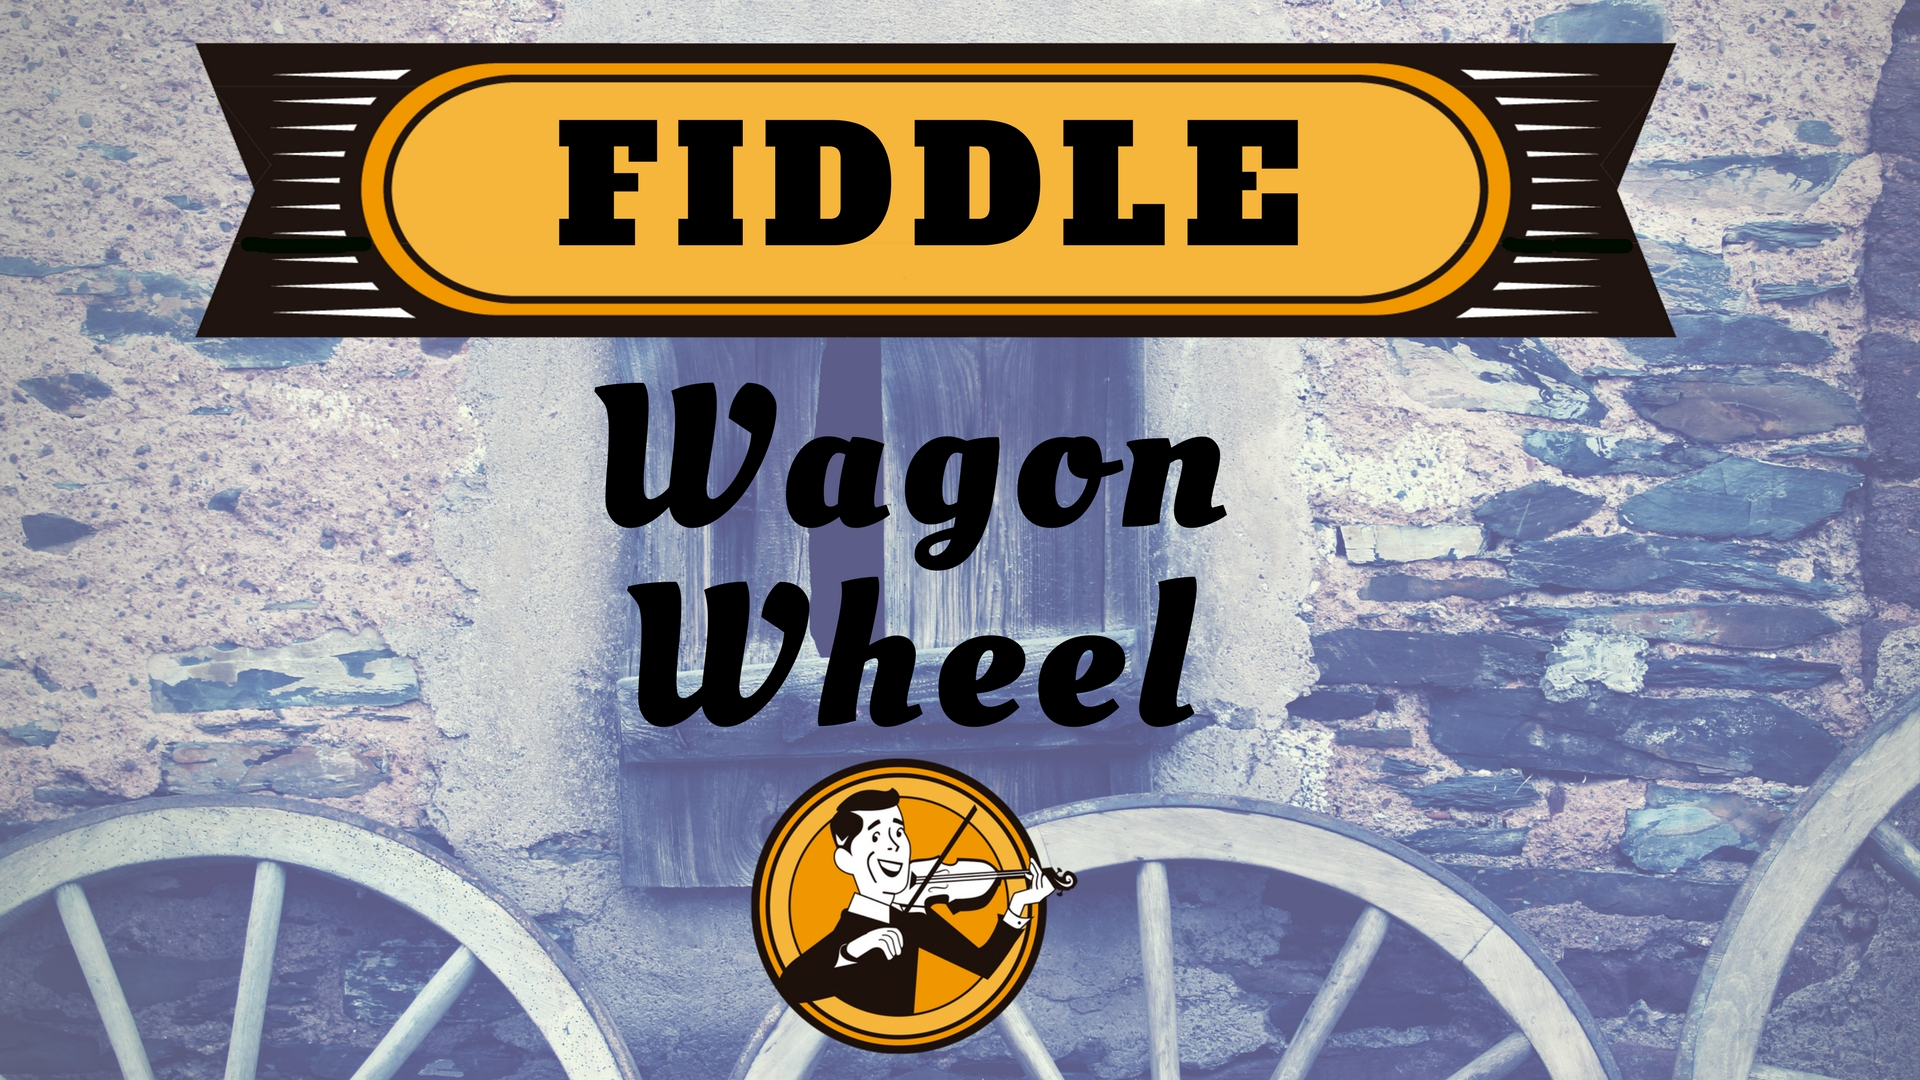 Fiddle wagon wheel